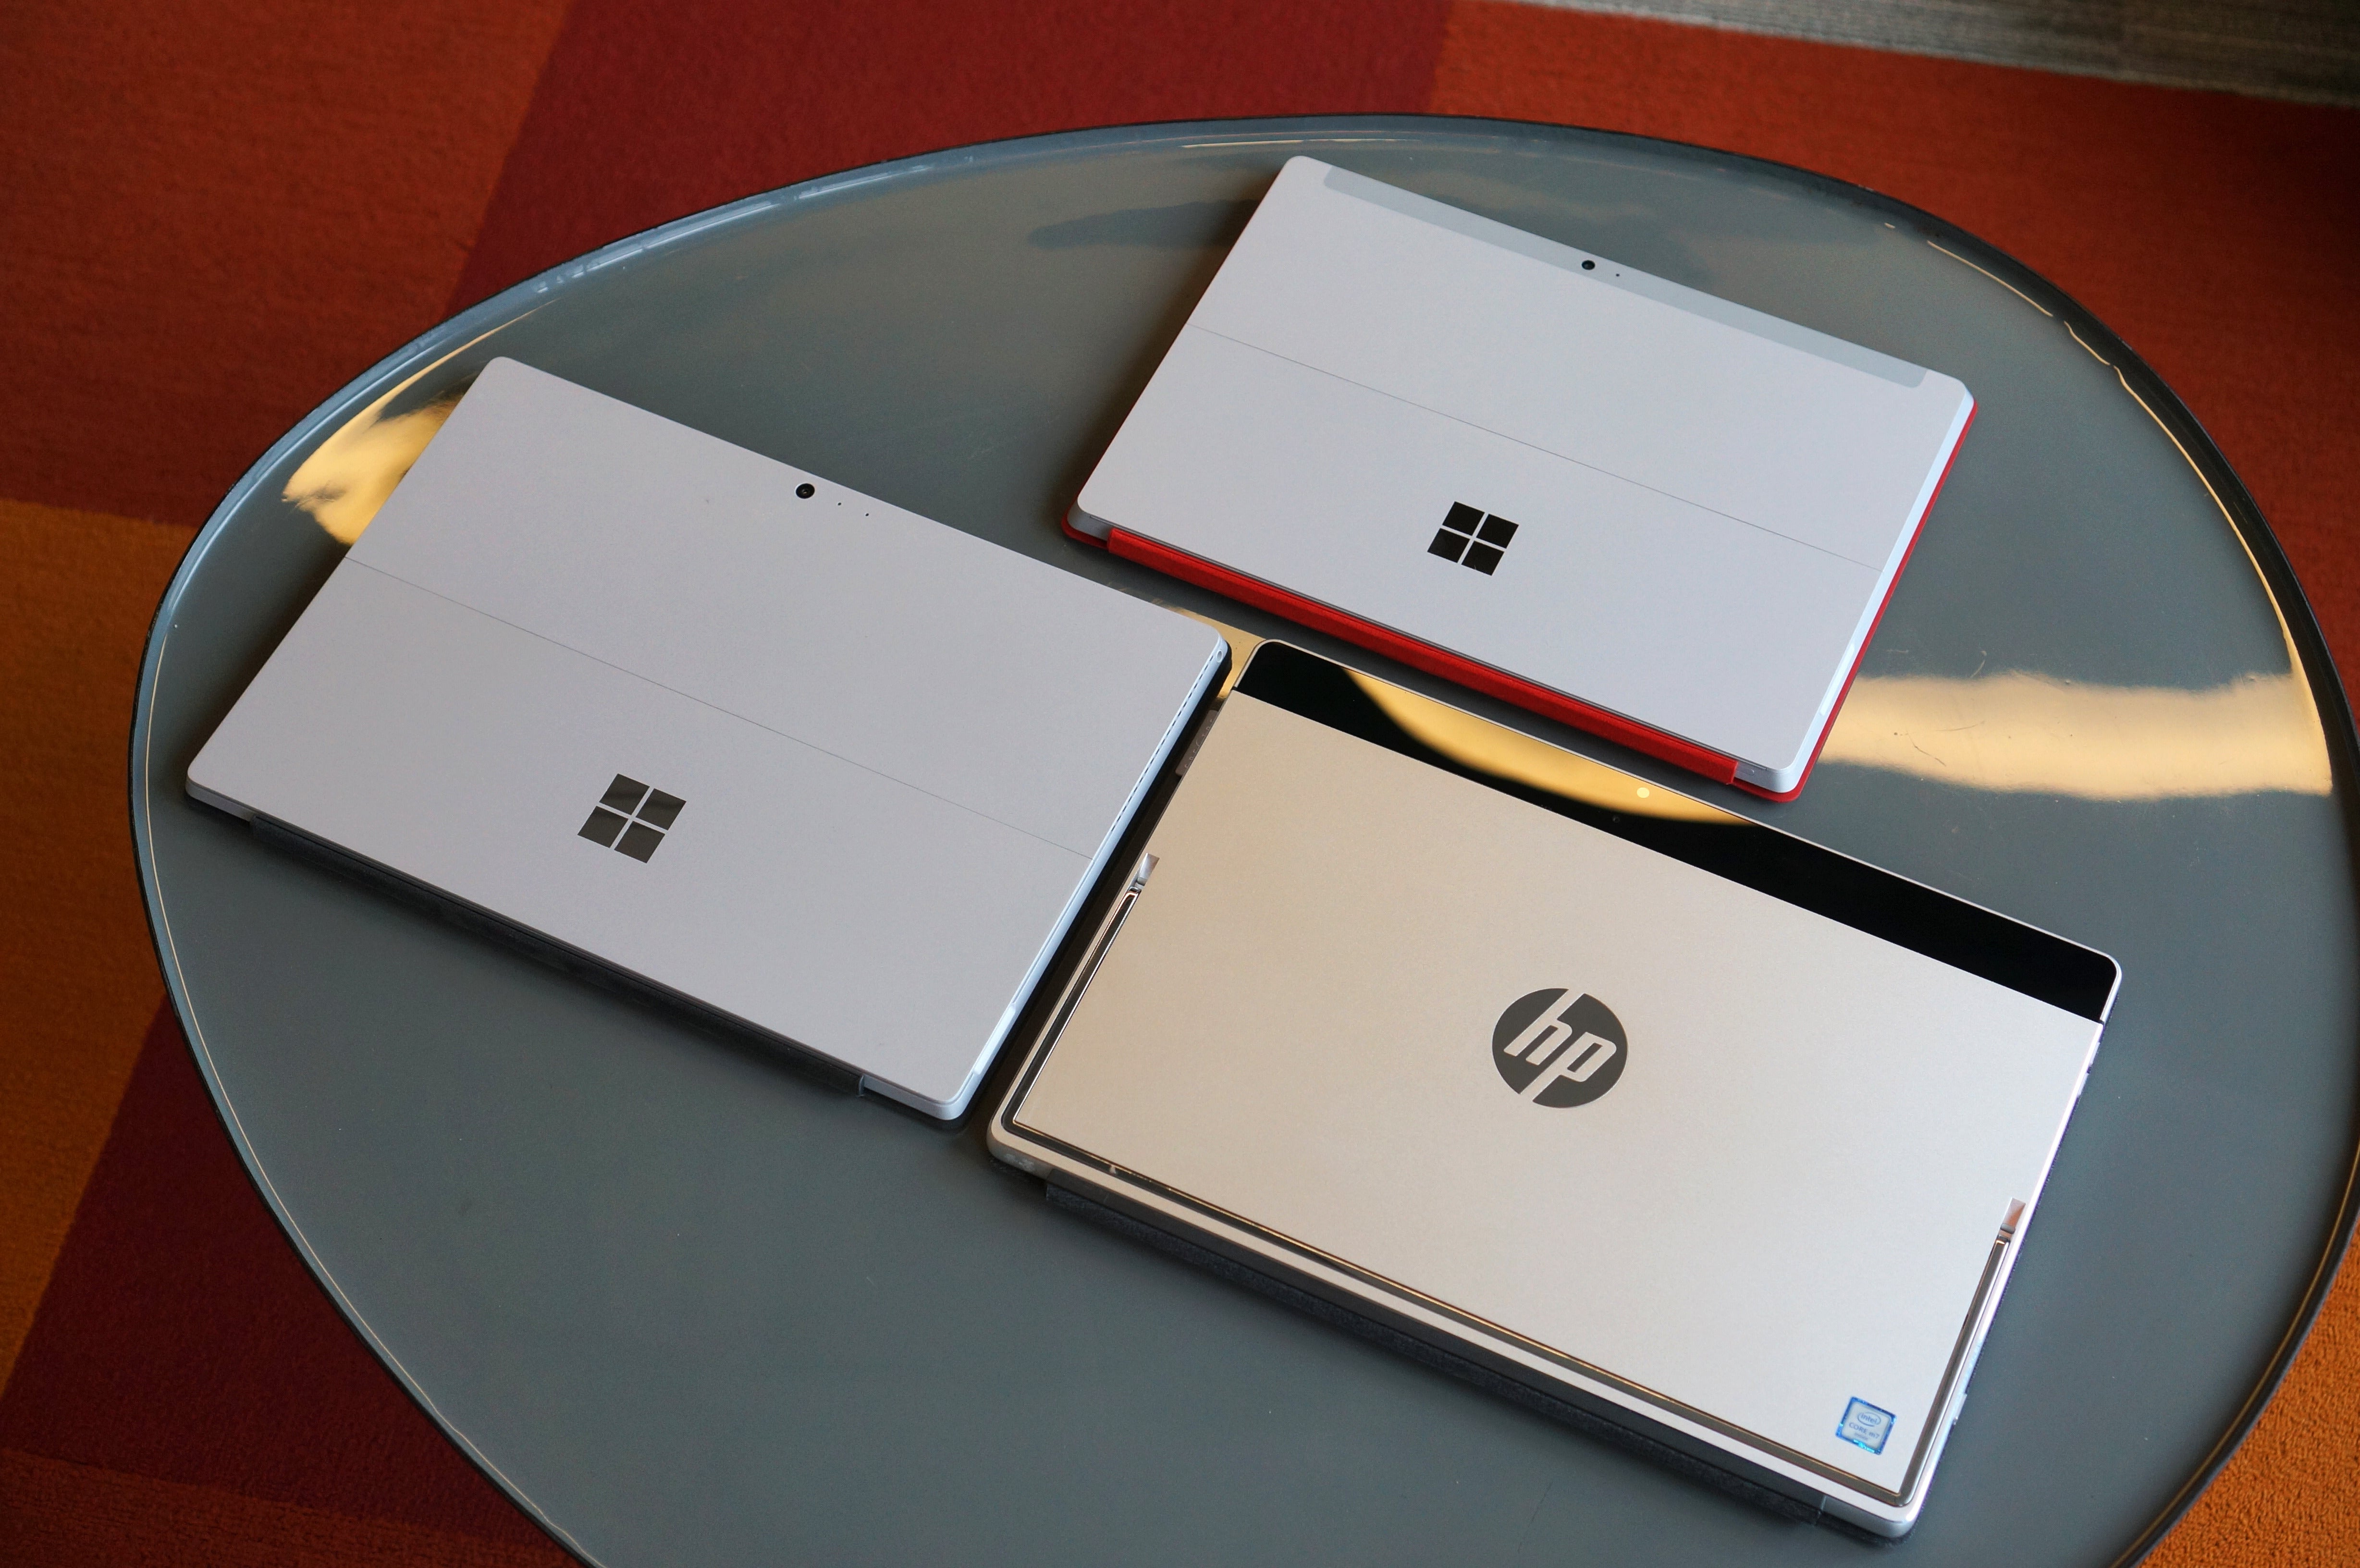 Hp Spectre X2 Review A Surface Clone For Lot Less Cash Pcworld Flashdisk 8gb V178w 12 Back